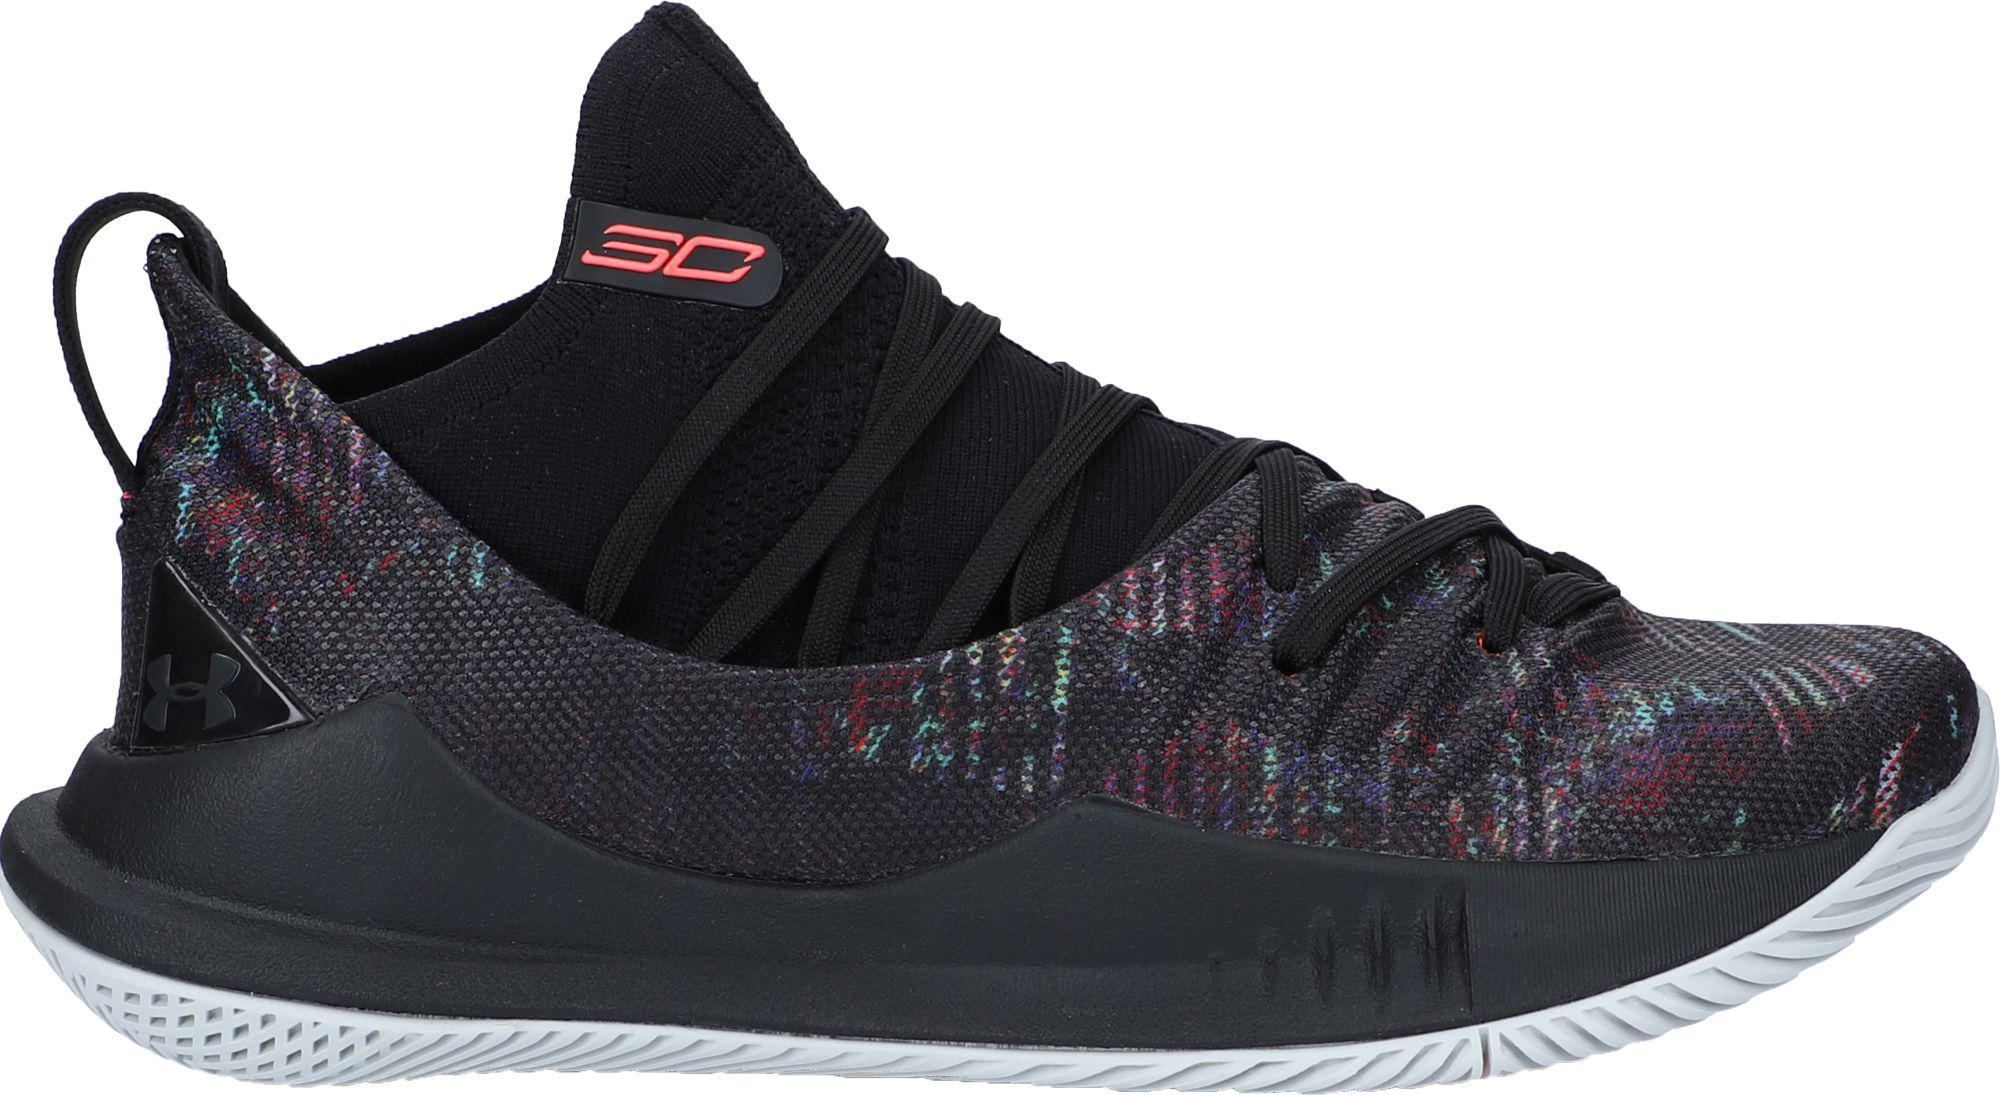 Under Armour Stephen Curry Curry 5 in